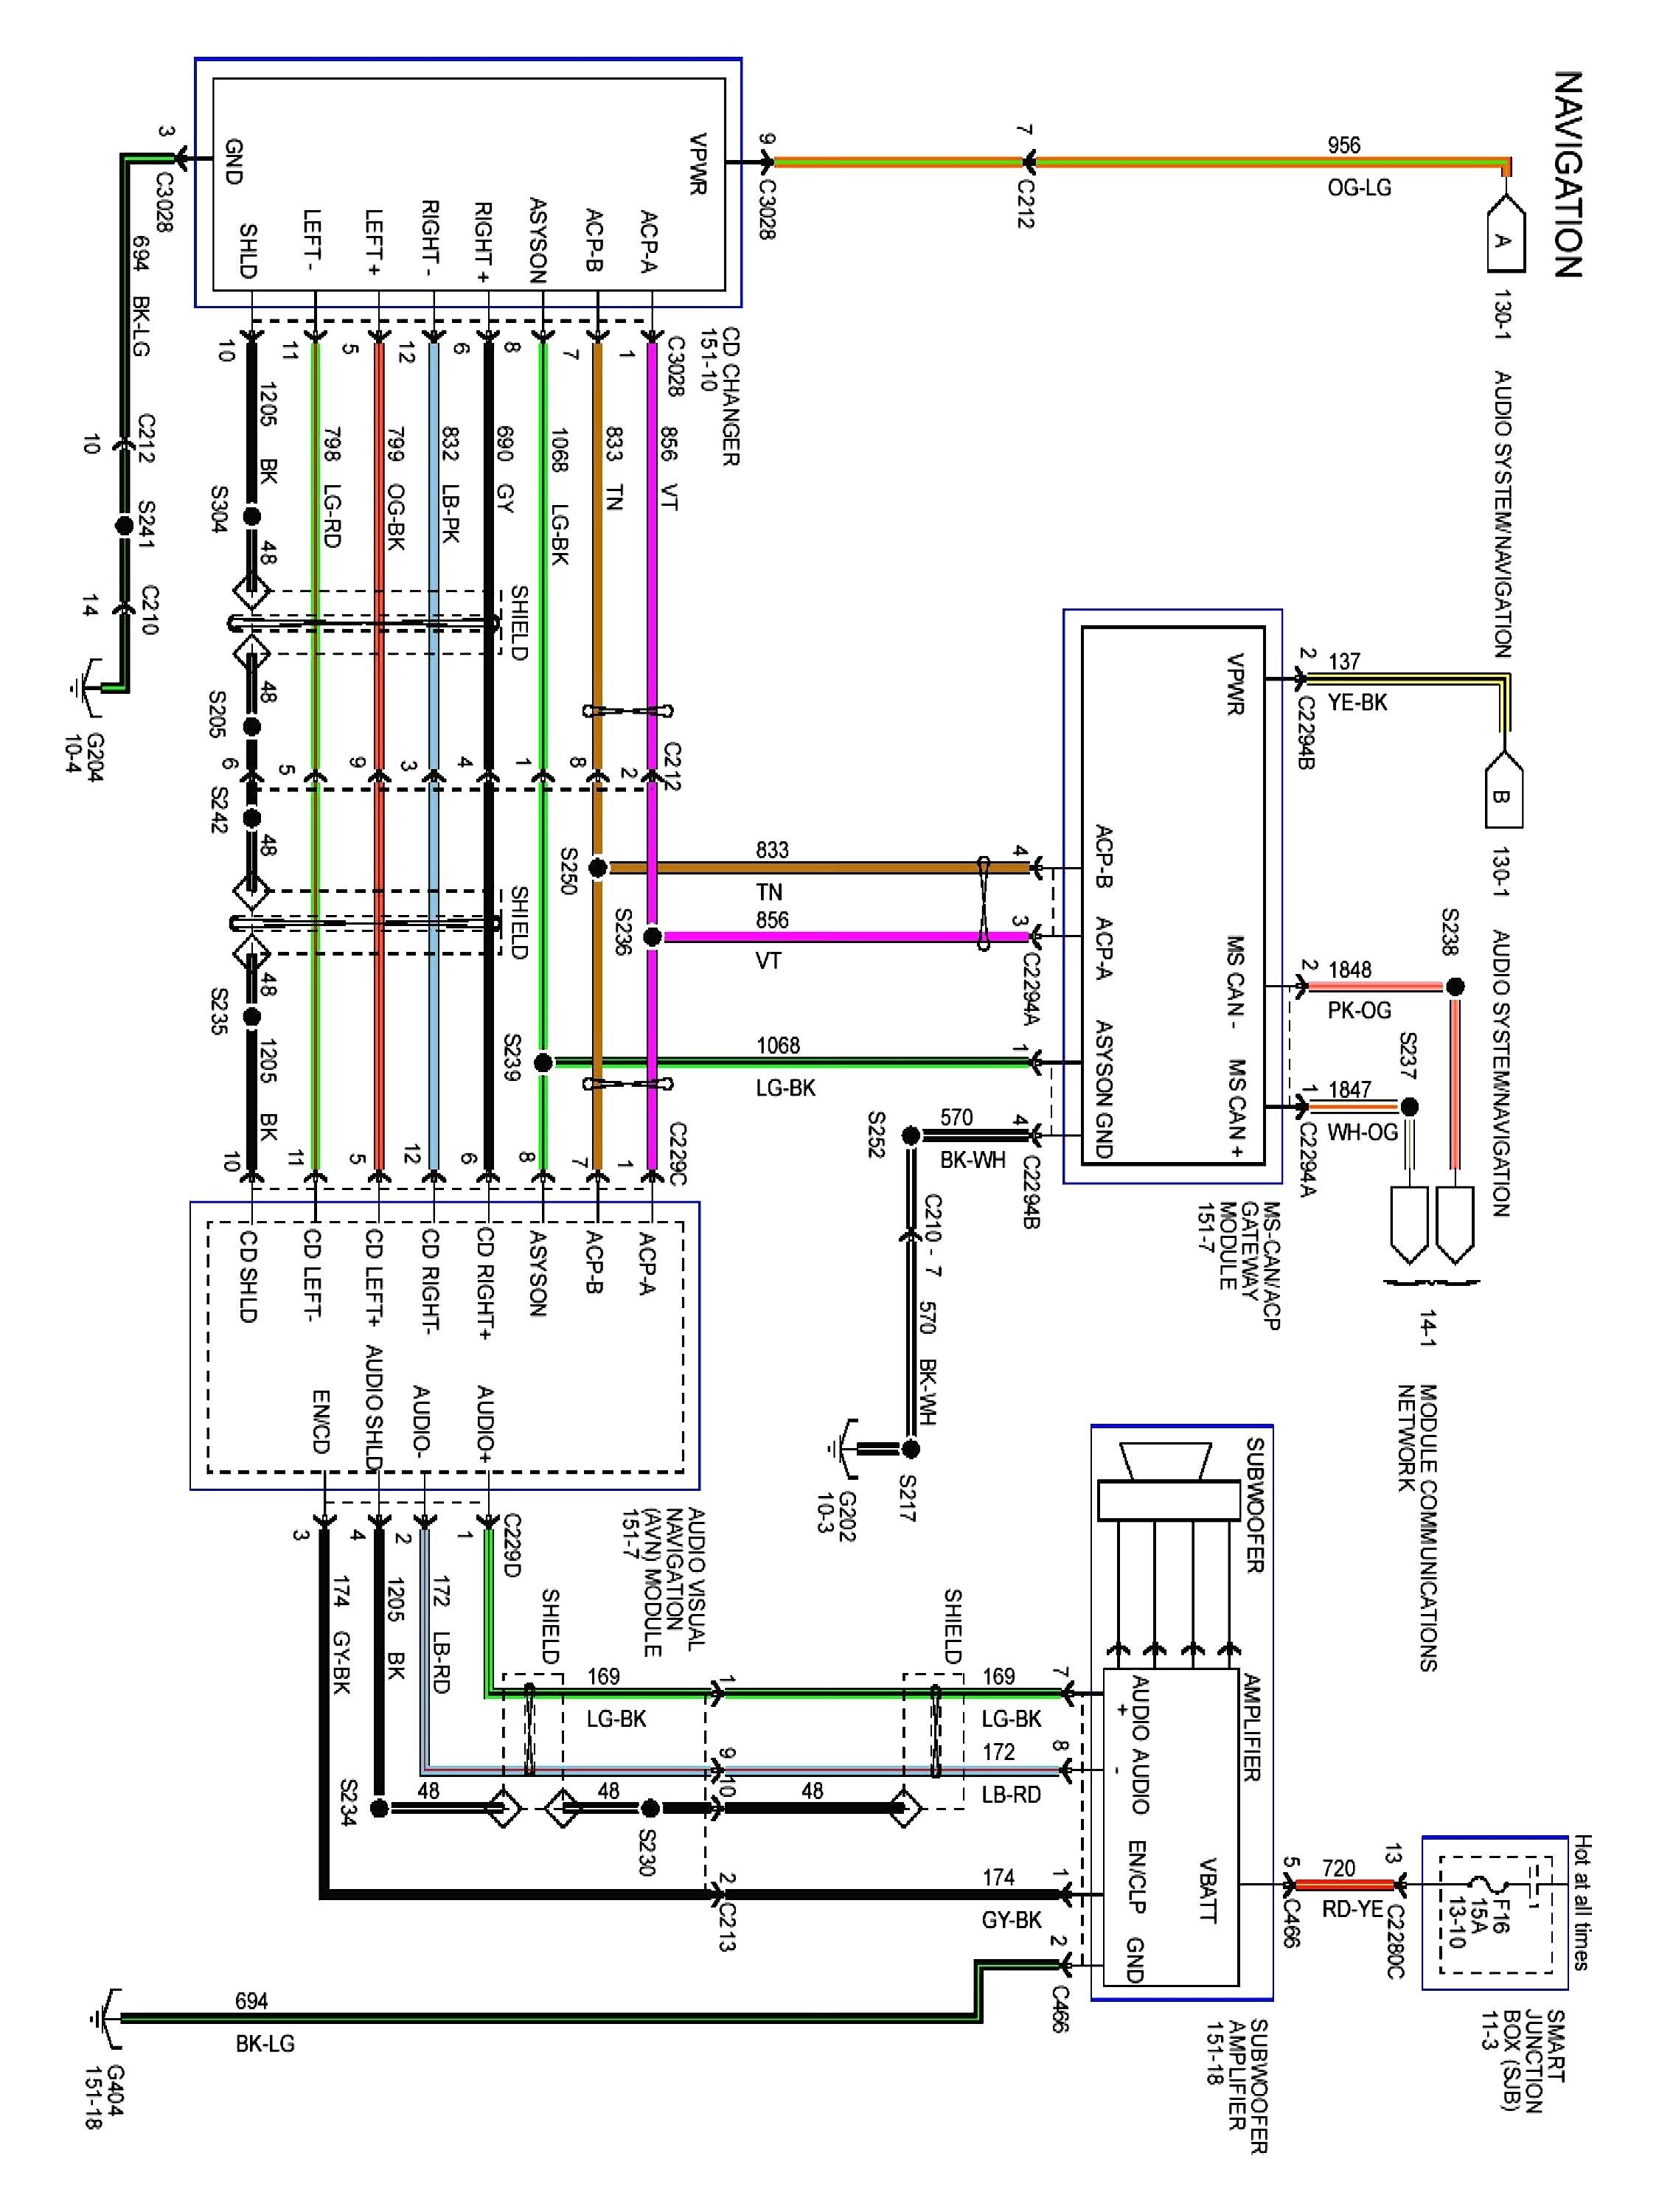 new 2011 dodge ram 1500 radio wiring diagram diagram 1999 dodge ram 2500 wiring diagram 2011 dodge truck wiring diagram #2